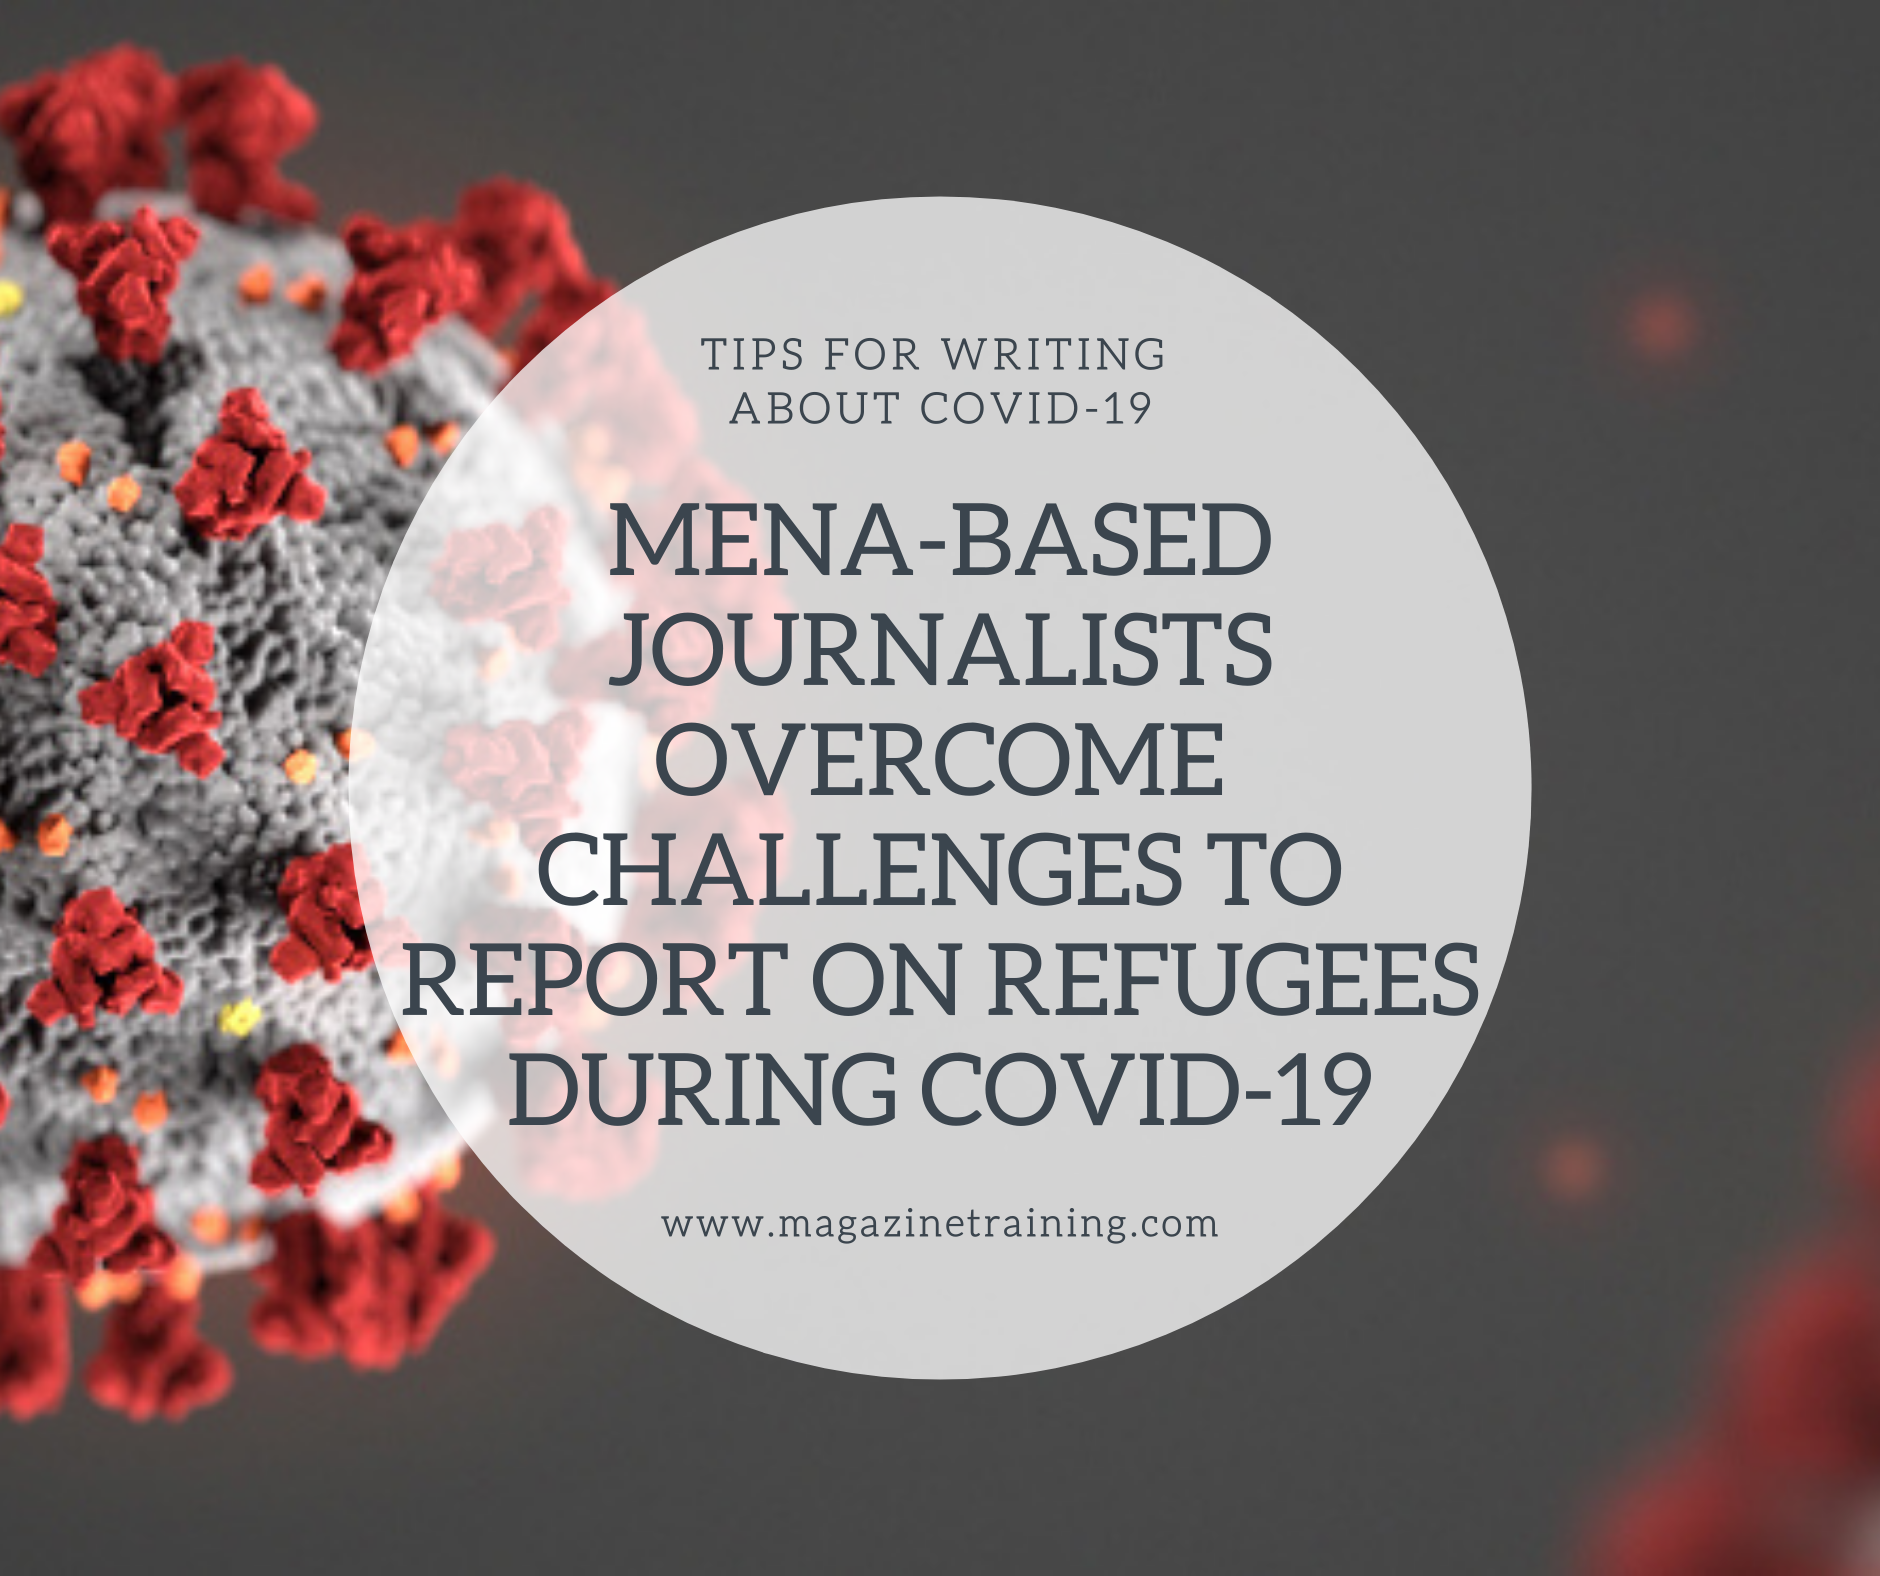 reporting on refugees during COVID-19